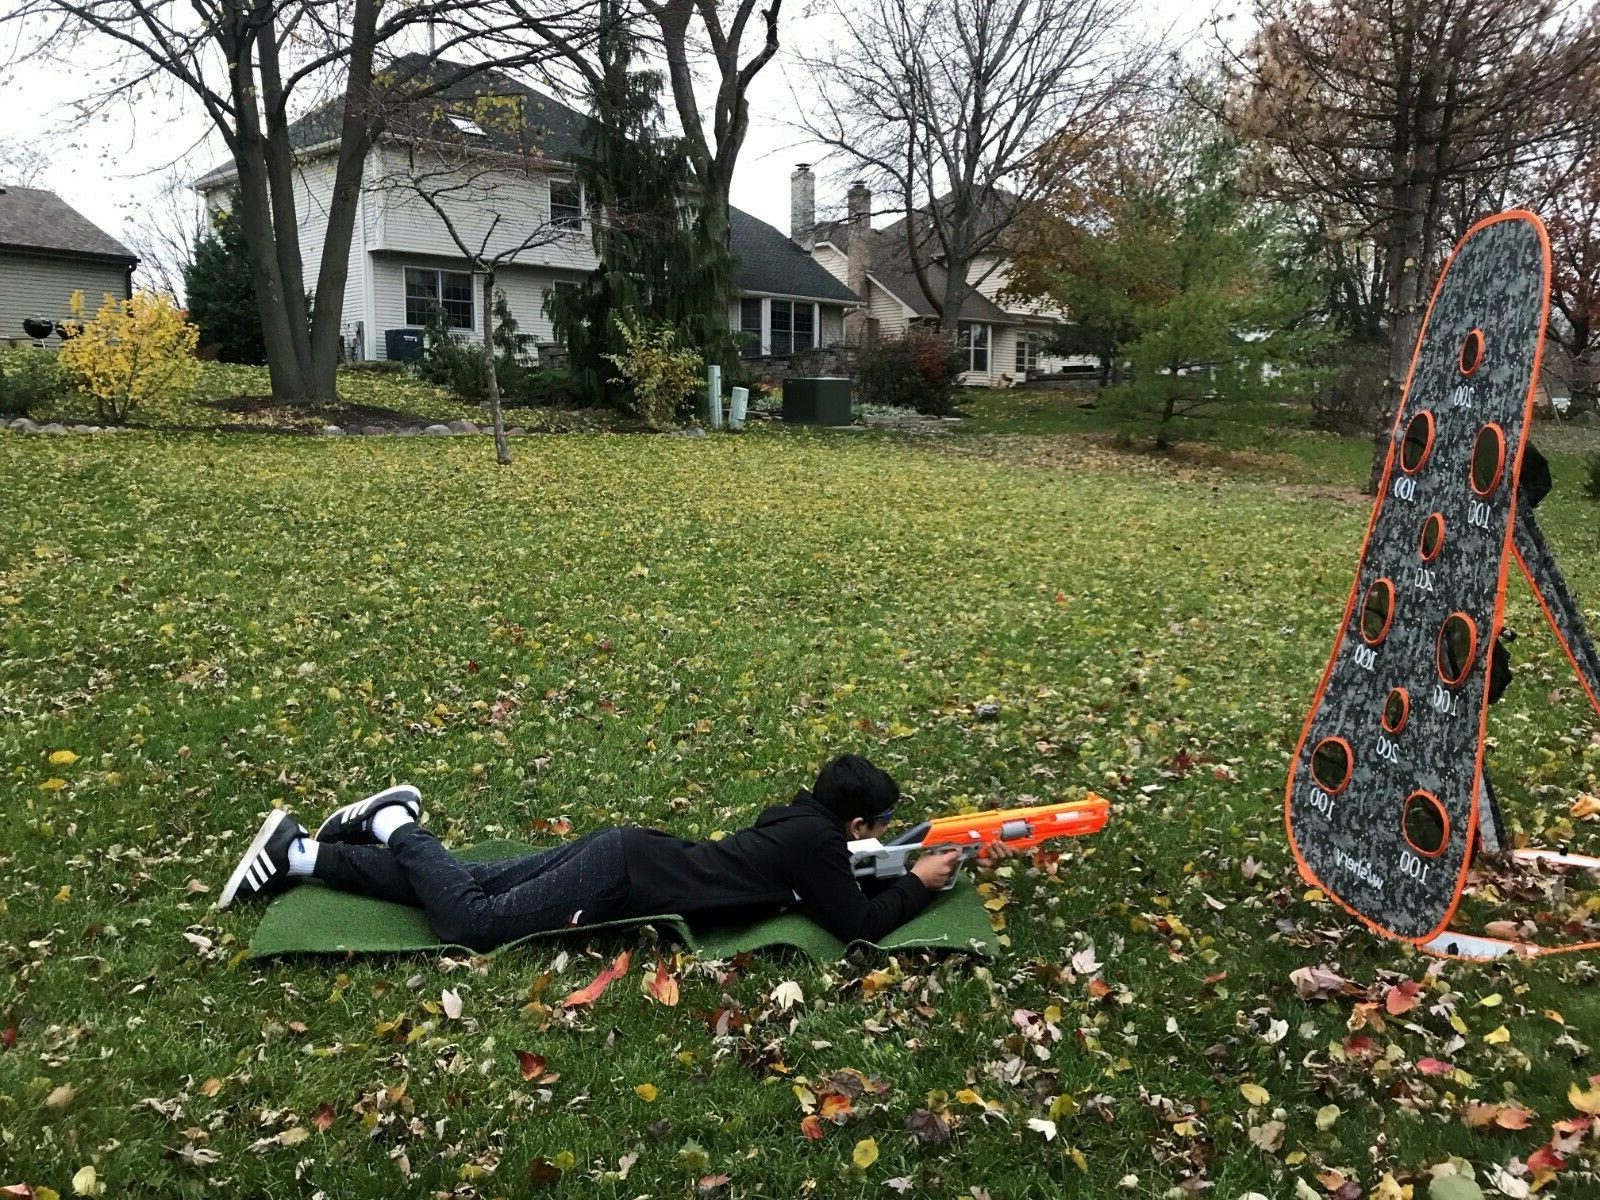 Nerf target compatible with Nerf shooting practice kids.